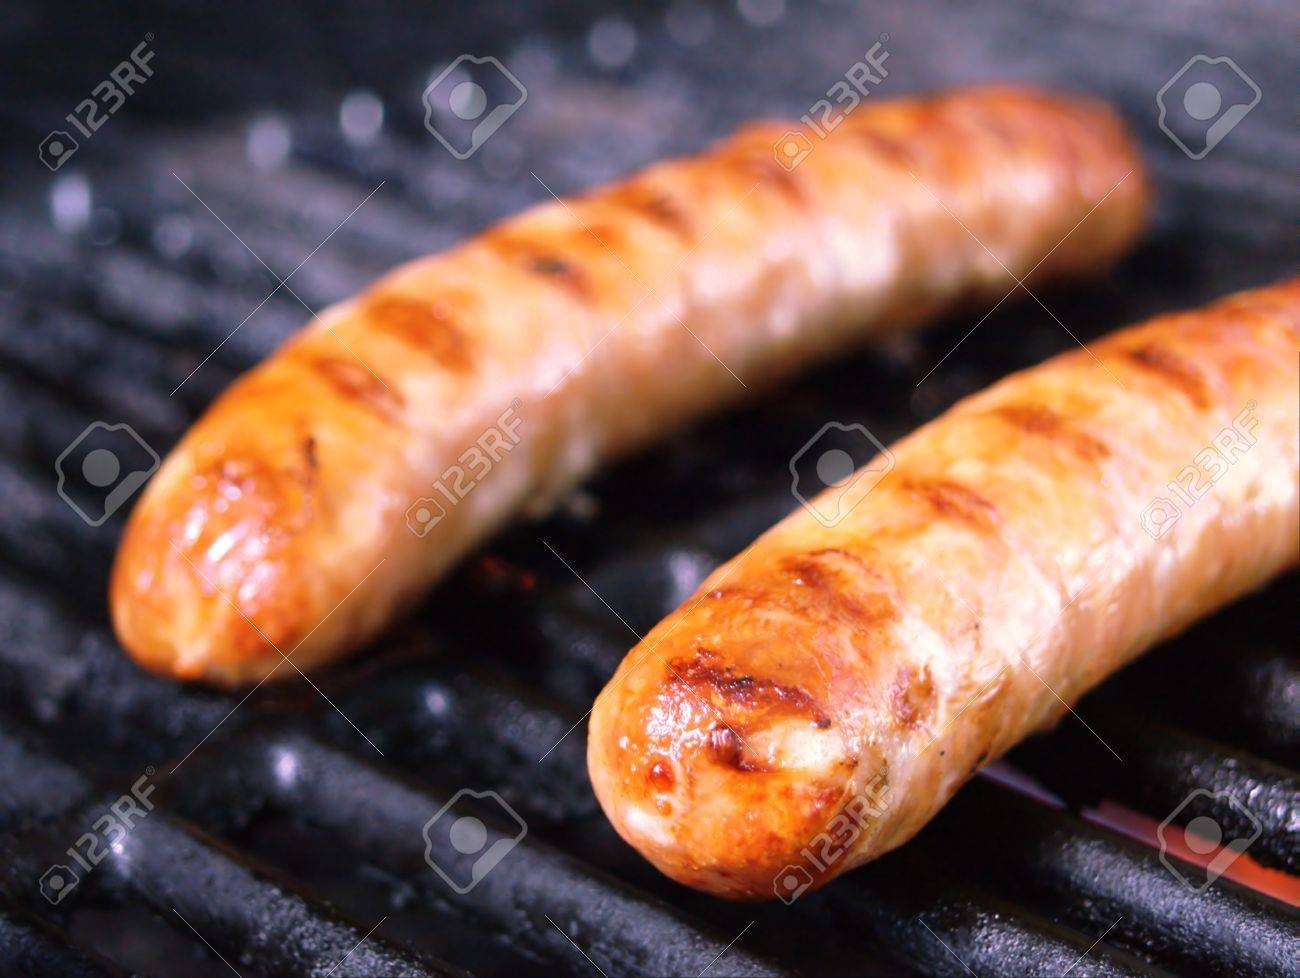 http://previews.123rf.com/images/novatrader/novatrader1303/novatrader130300073/18784113-Two-large-juicy-German-sausages-cooking-on-a-barbecue-Stock-Photo.jpg